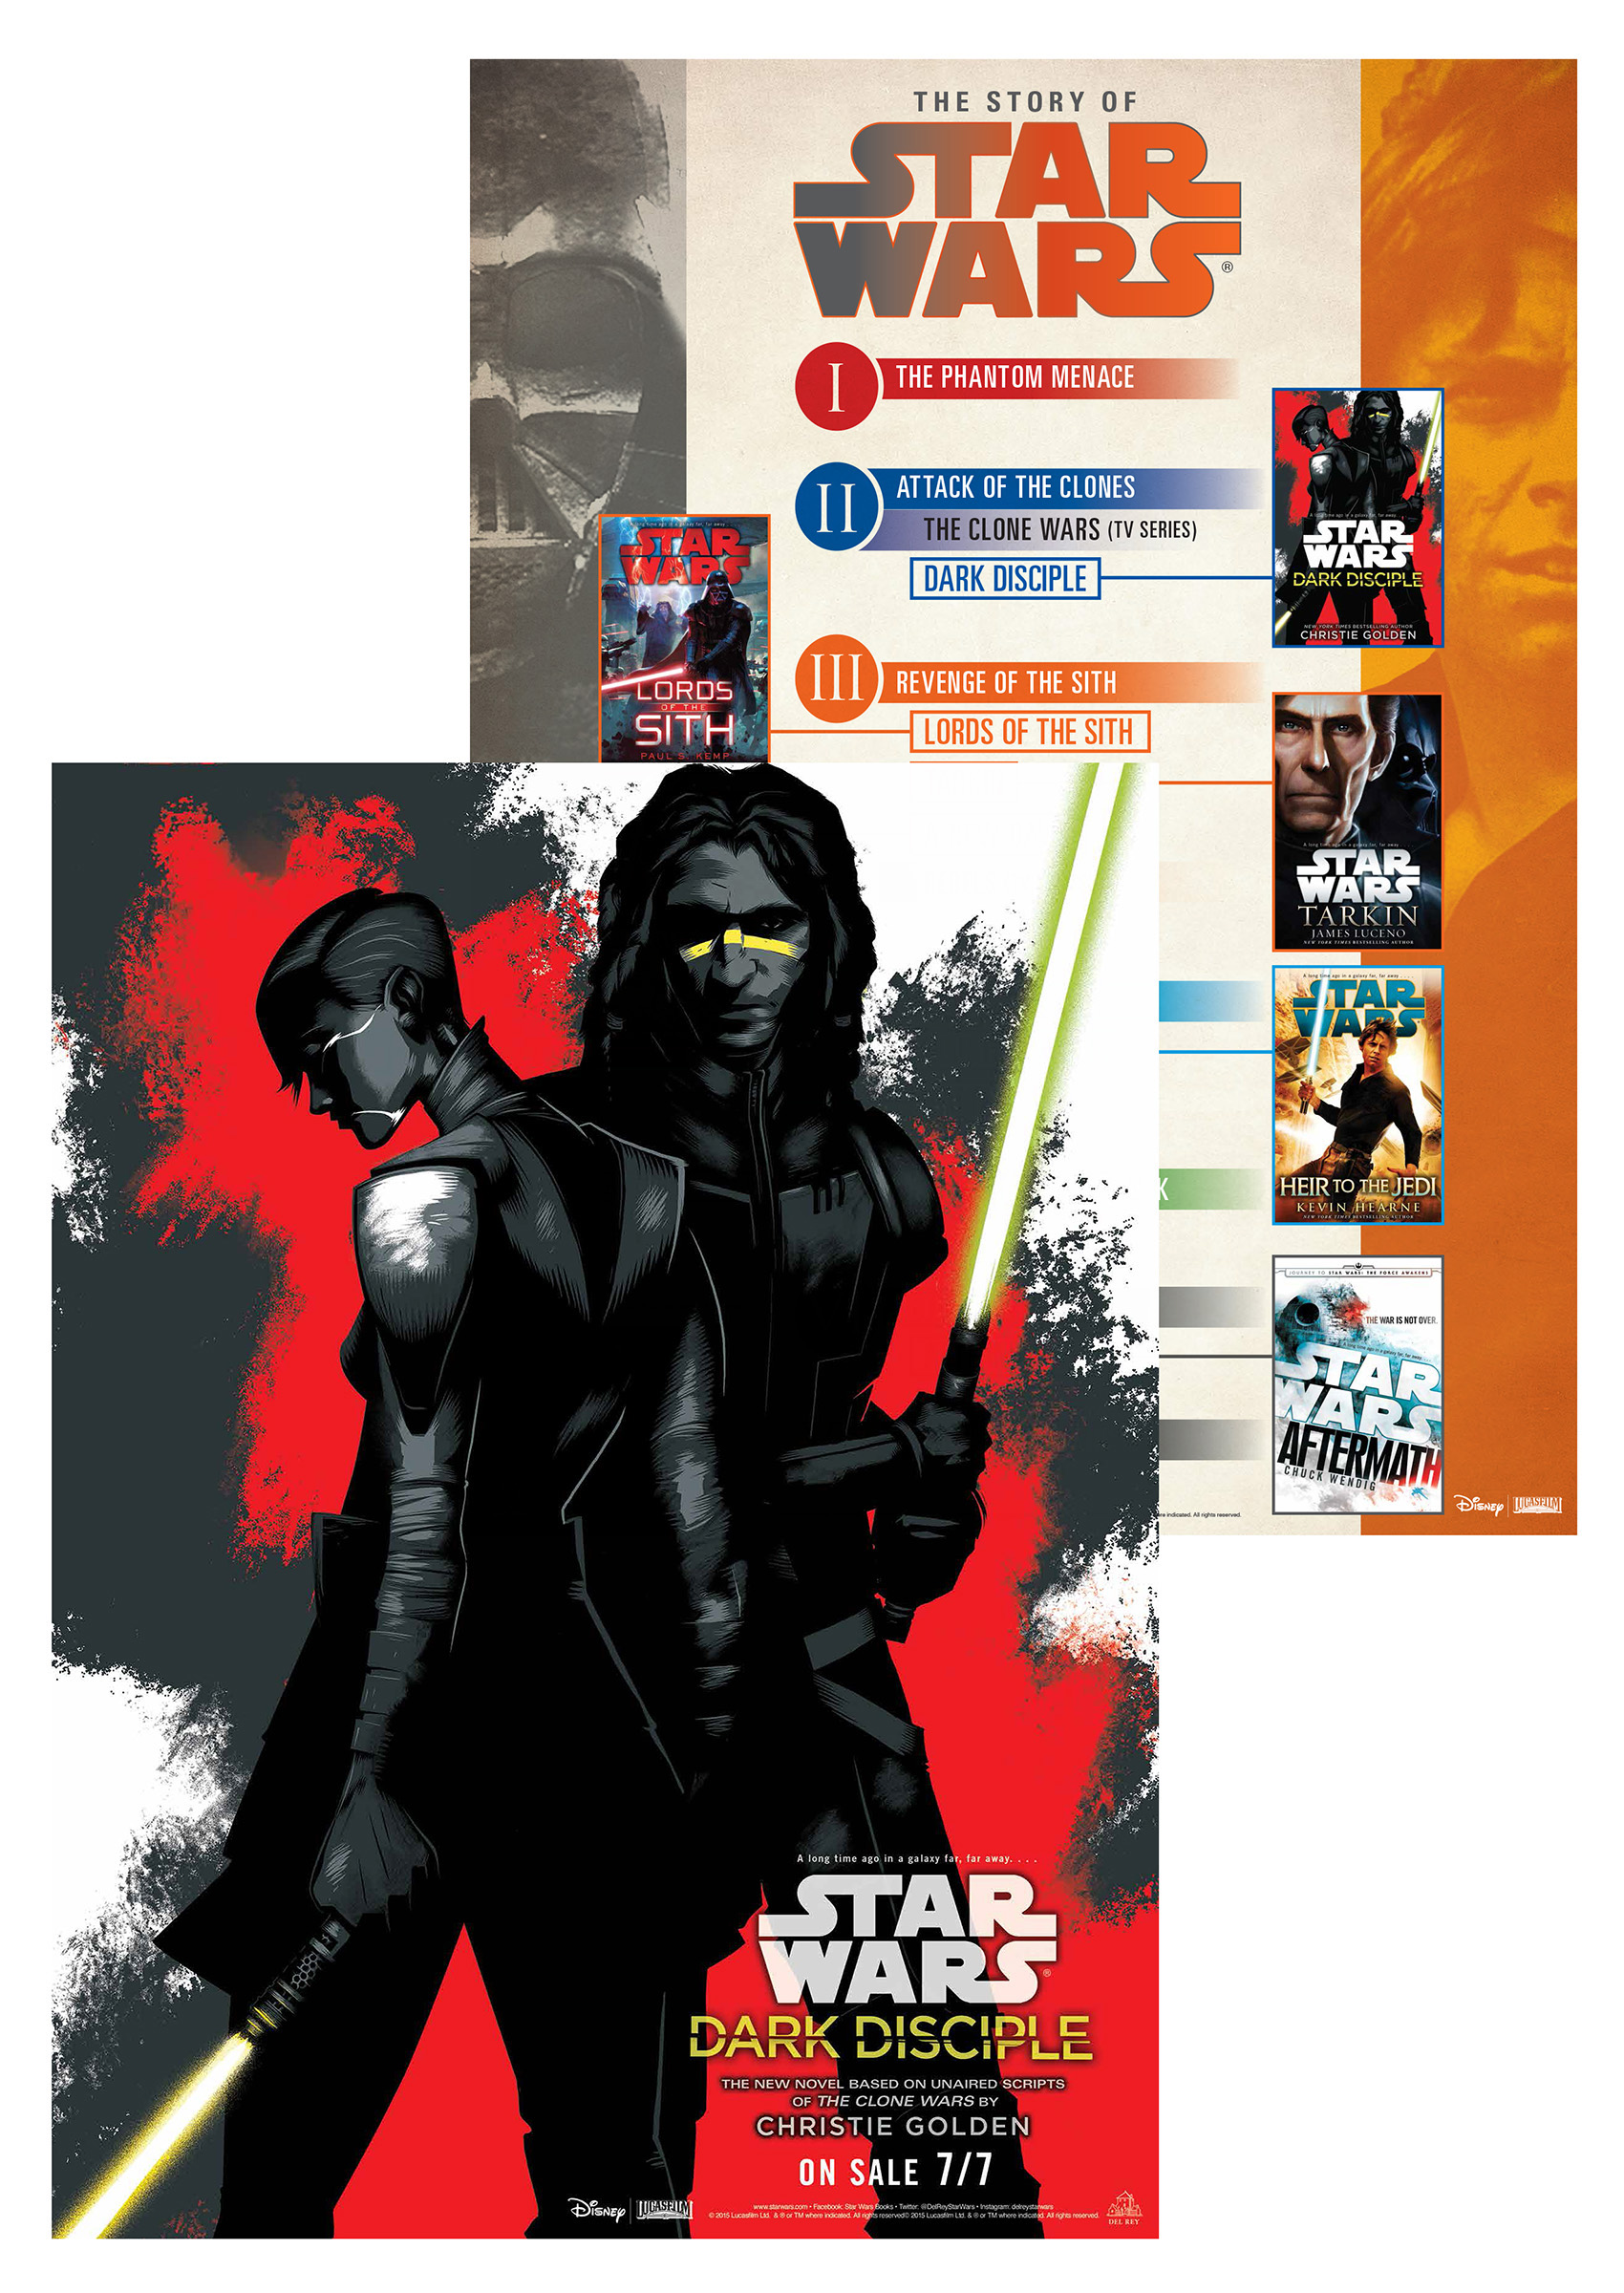 Star Wars: Dark Disciple poster